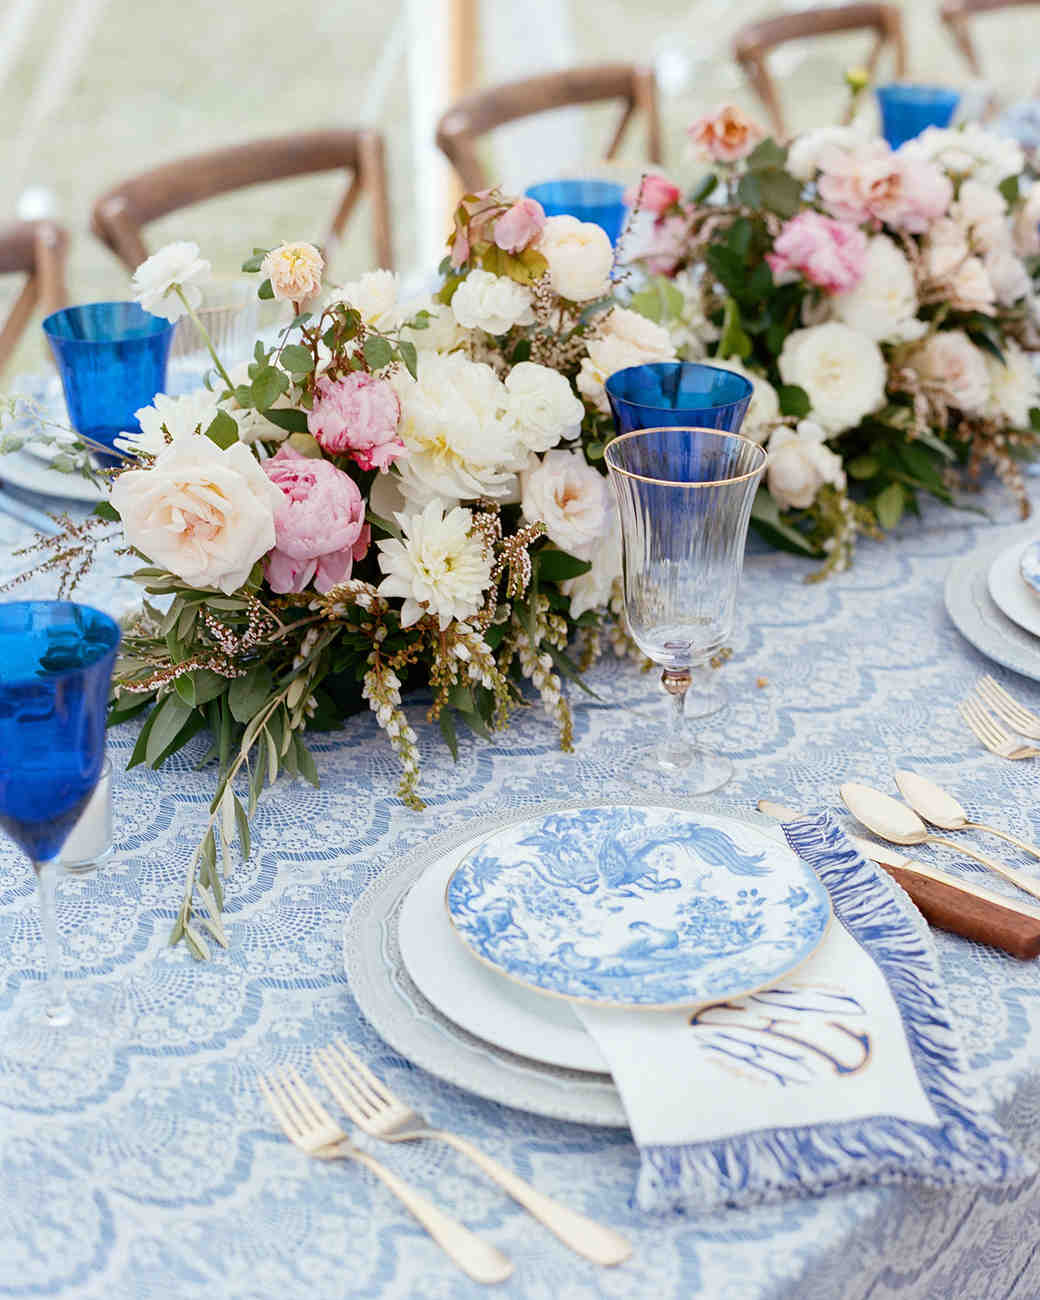 scalloped wedding decor blue tablecloth